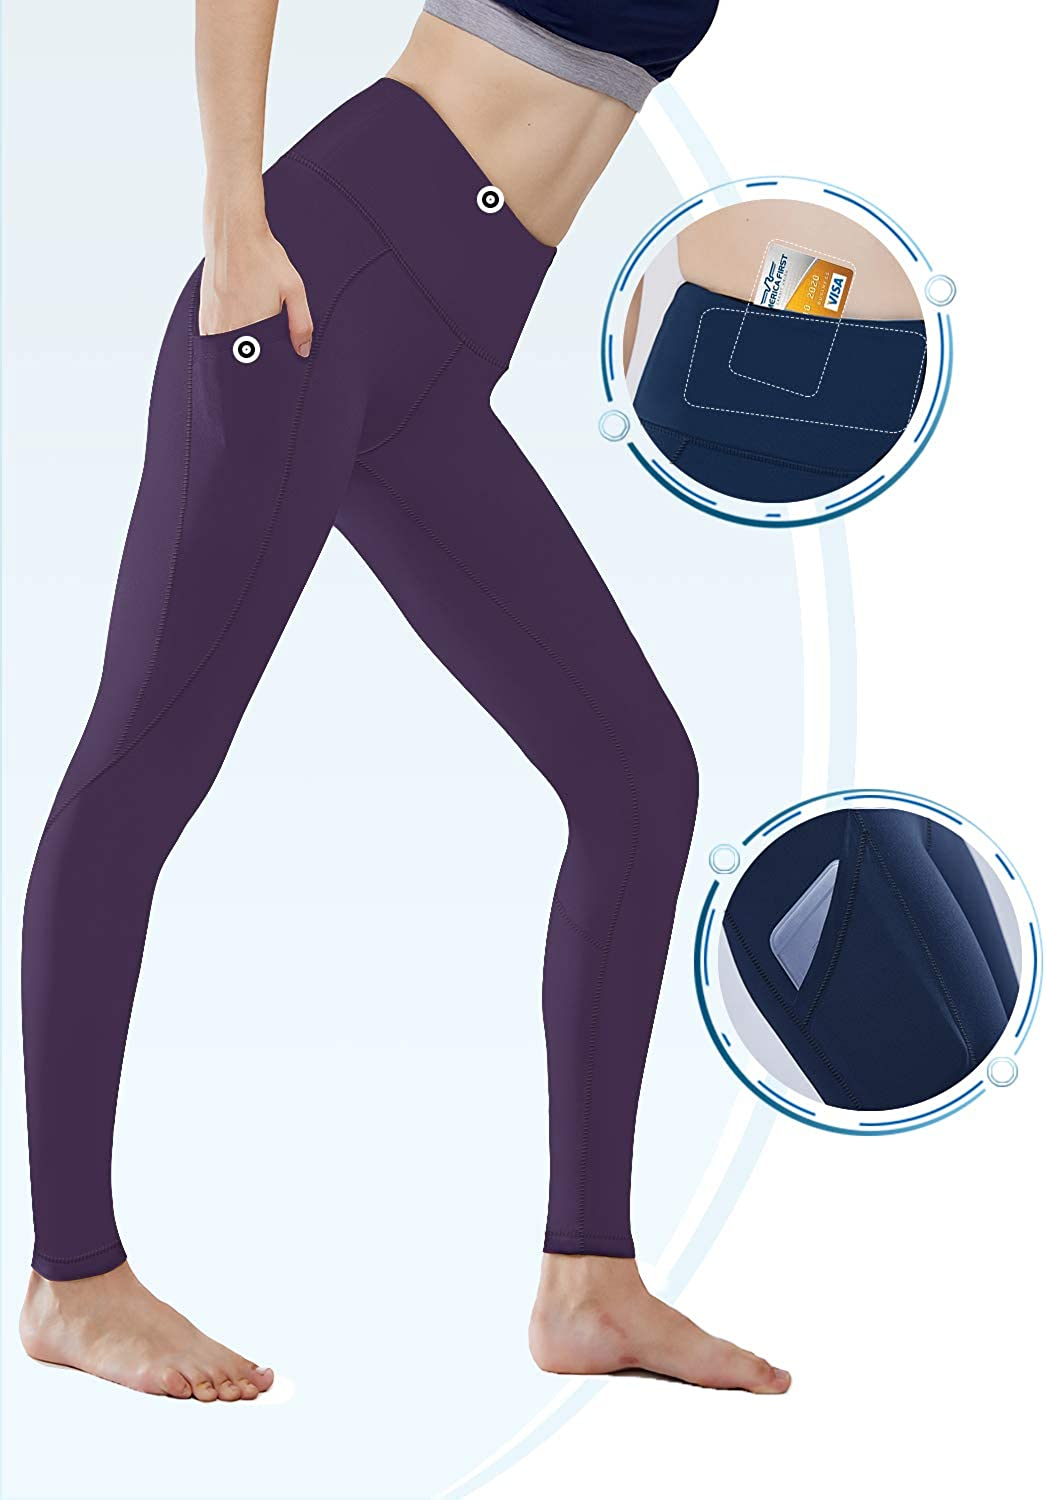 HISKYWIN Women Yoga Pants with Pockets Extra Soft Non See-Through Tummy Control High Waist Workout Leggings